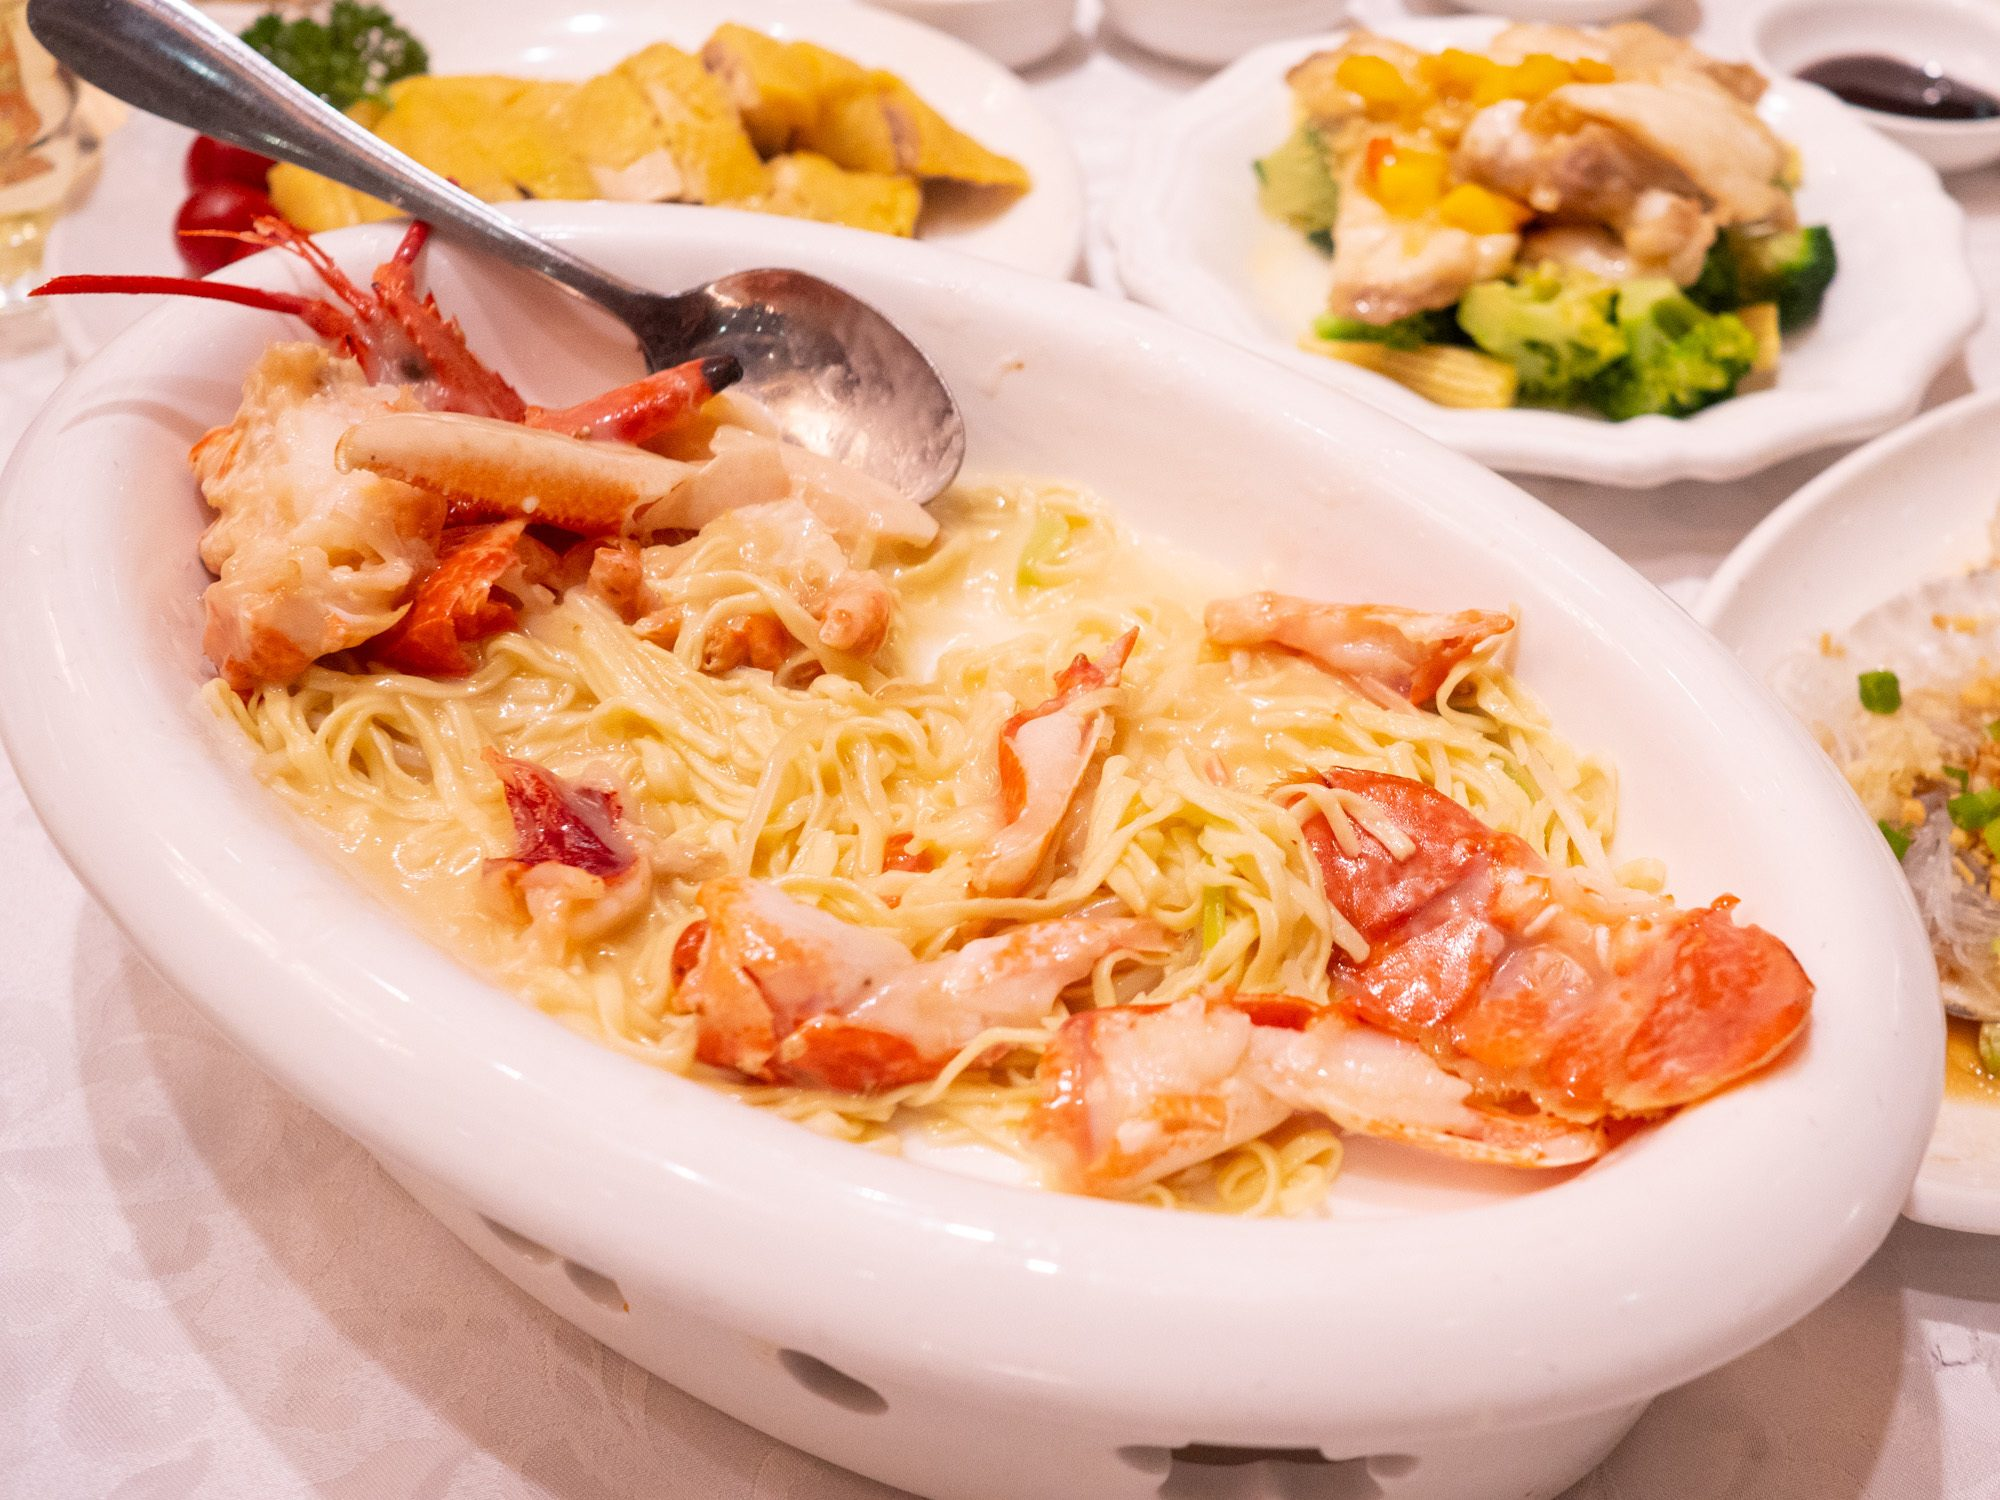 The lobster noodles at tai woo seafood restaurant are extremely creamy and garlicky and delicious!